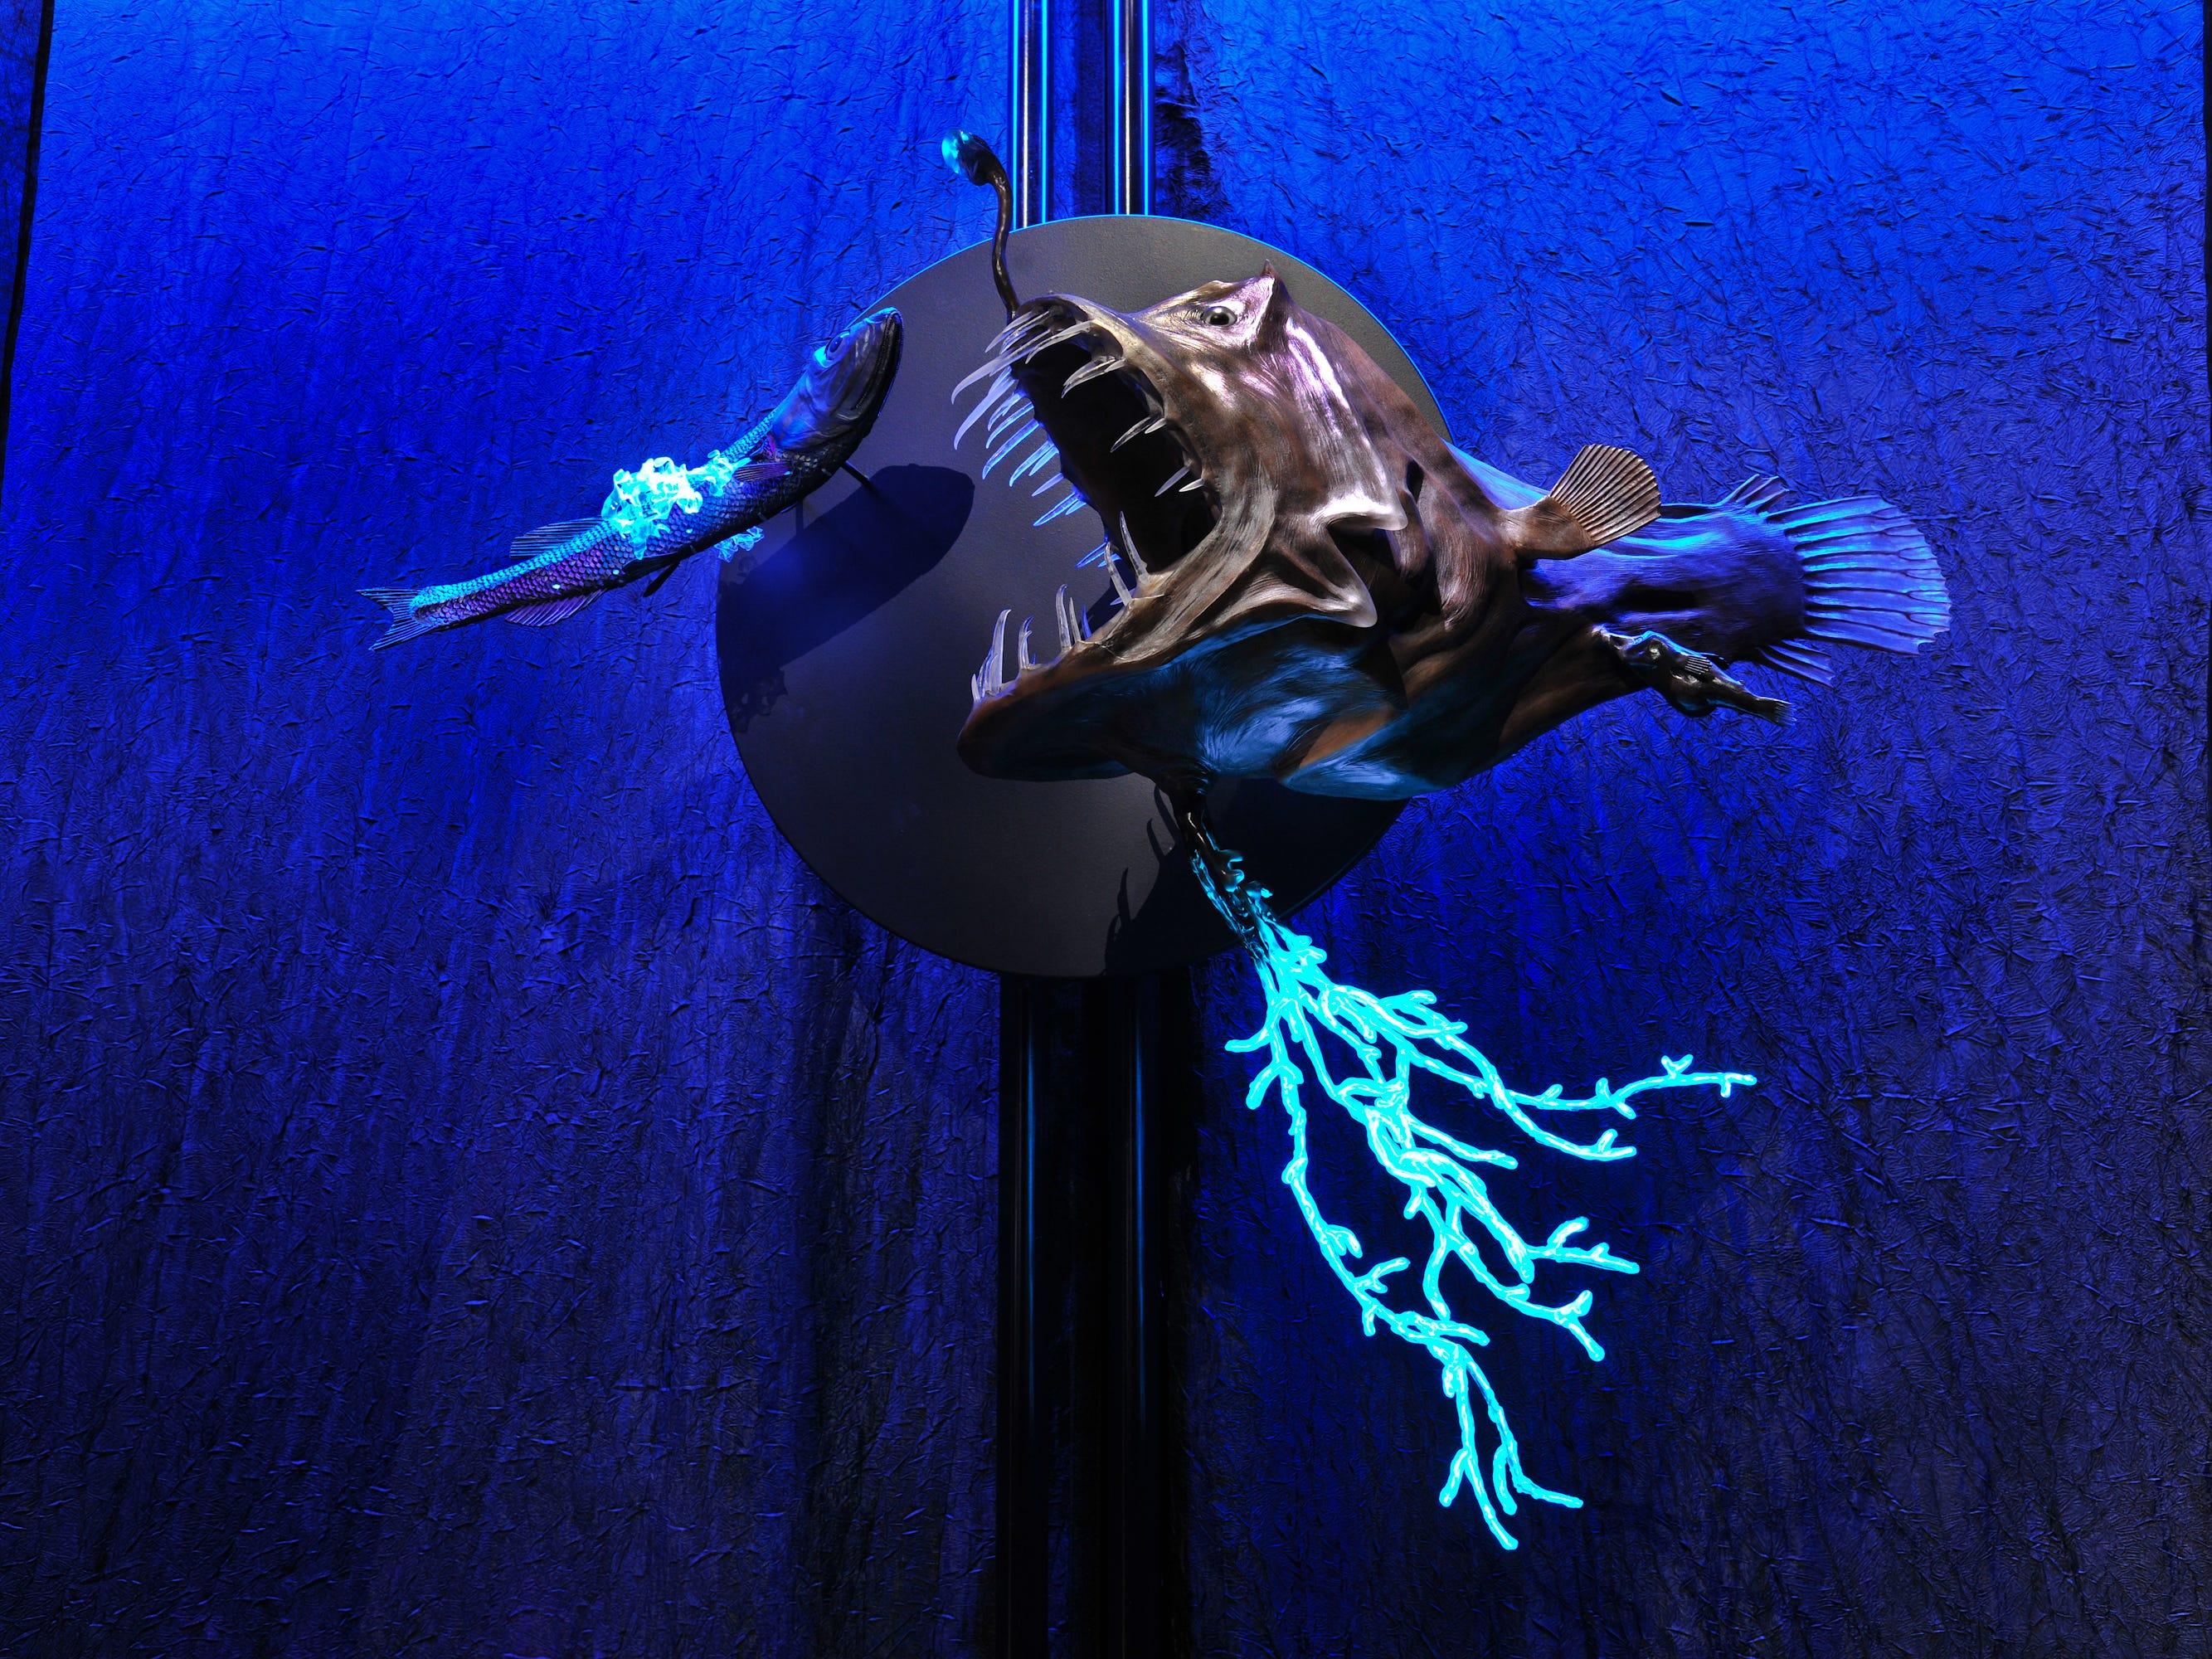 """Part of the """"Creatures of Light: Nature's Bioluminescence"""" exhibit, a female anglerfish has her own built-in fishing rod: a modified dorsal fin spine topped with a lure that pulses with bacterial light."""